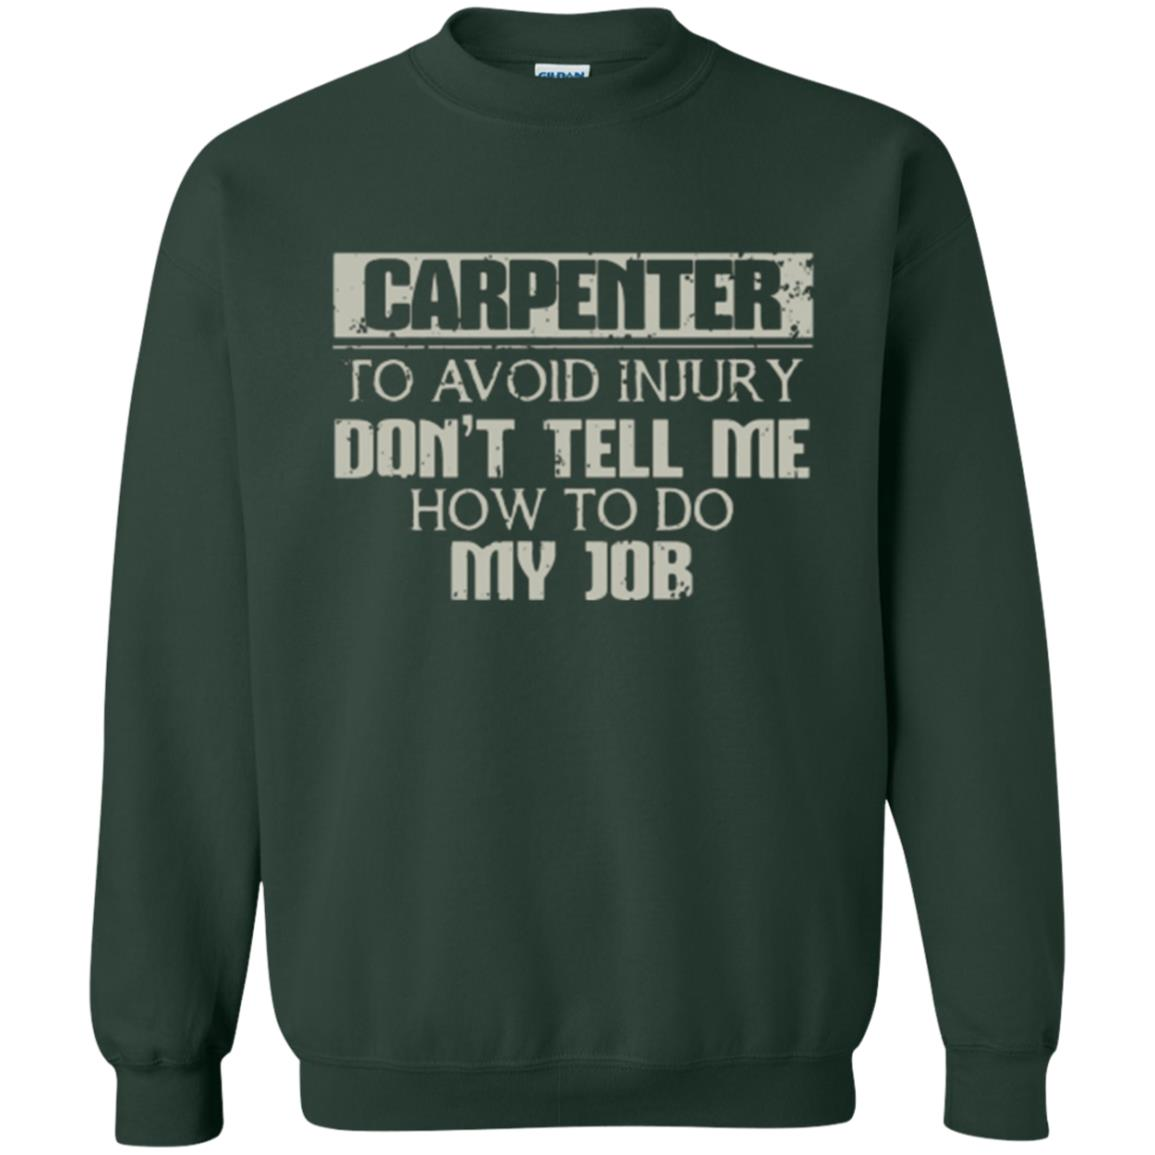 b0a1fa13 Funny Carpenter Shirts 10 Off Favormerch. Funny Carpenter Safety  Information Kids Long Sleeve T Shirt